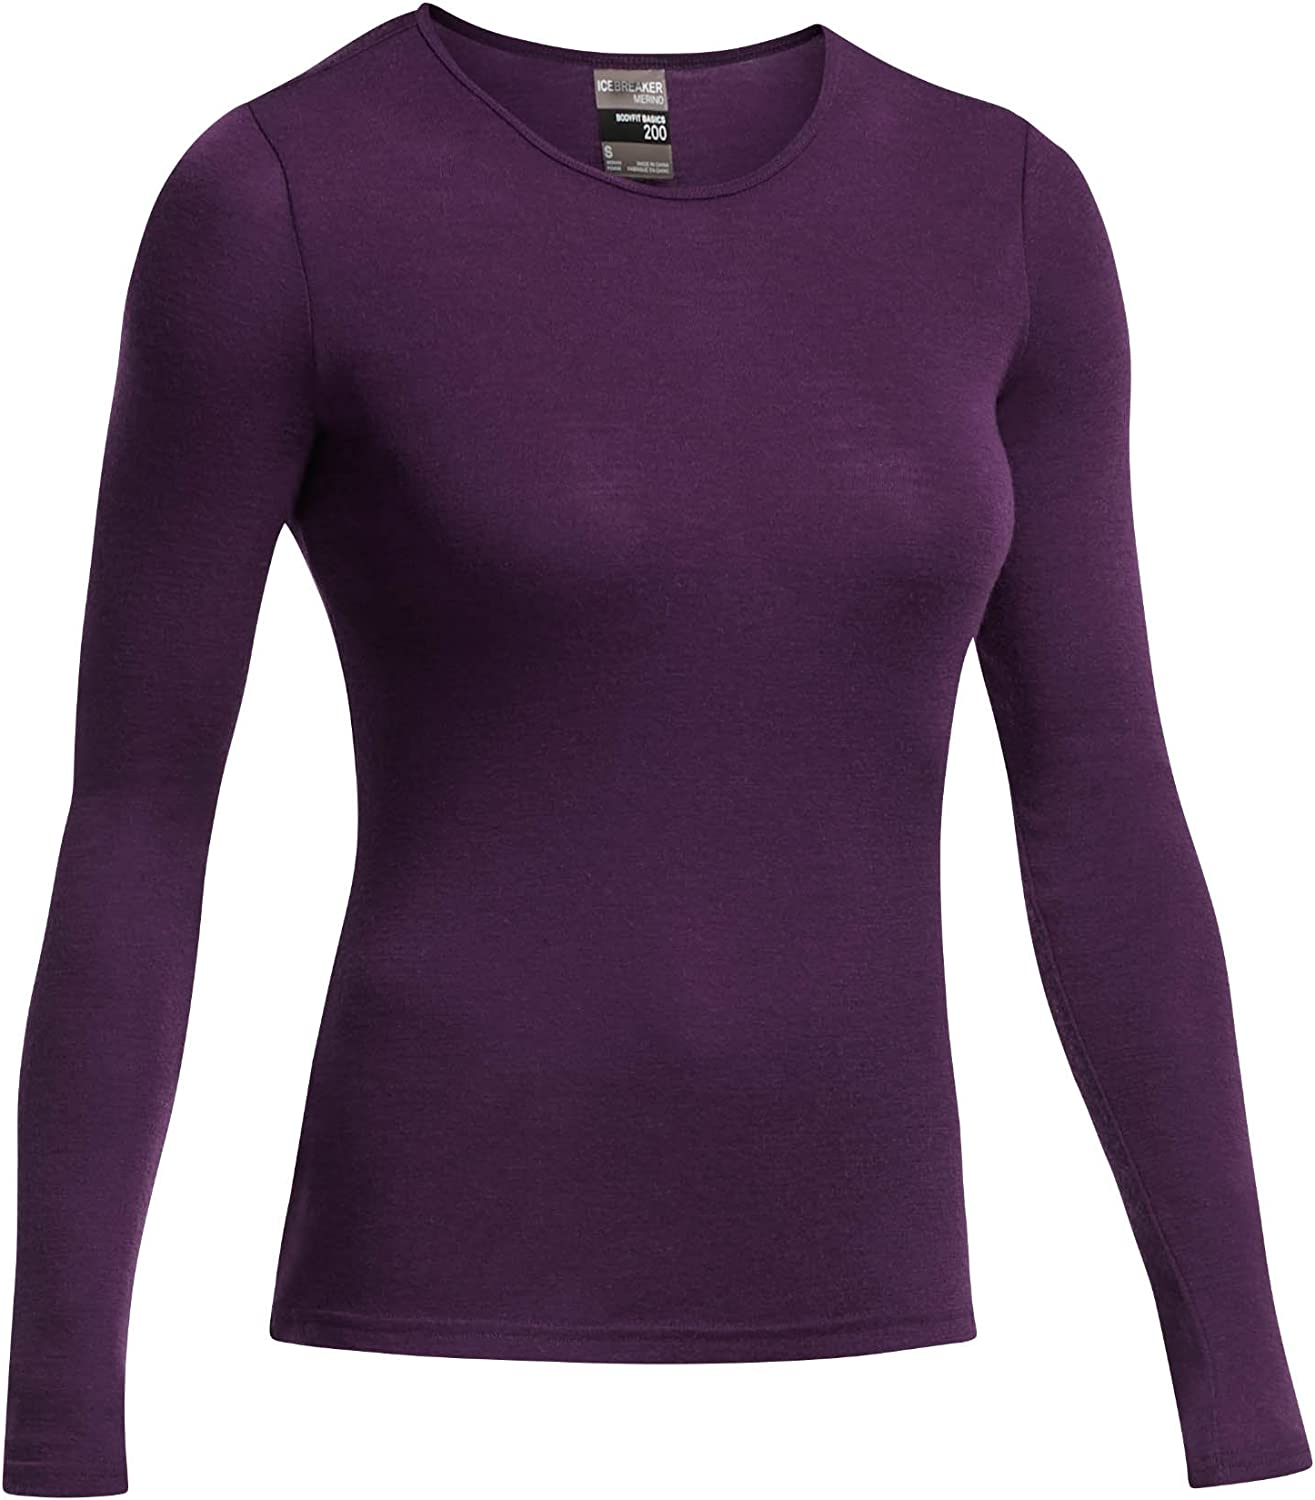 Icebreaker Women's Everyday Long Sleeve Crewe